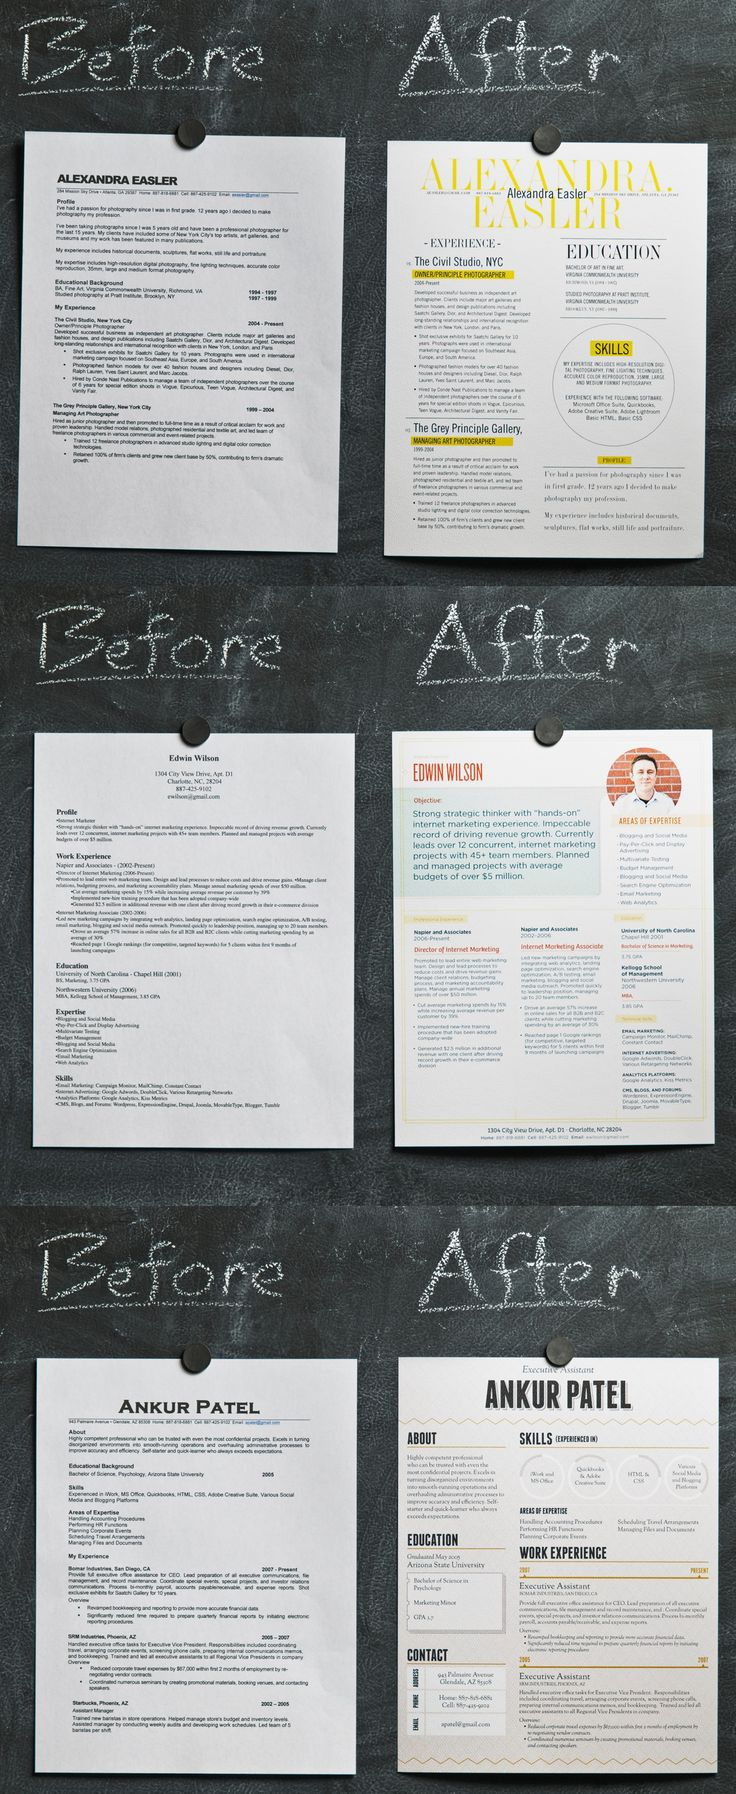 Resume tutorial:  three ways to help your resume look better. When someone looks at your resume verses someone else's, if yours looks like the ones on the right and theirs is on the left, yours will stand out over theirs. #apsucommchat